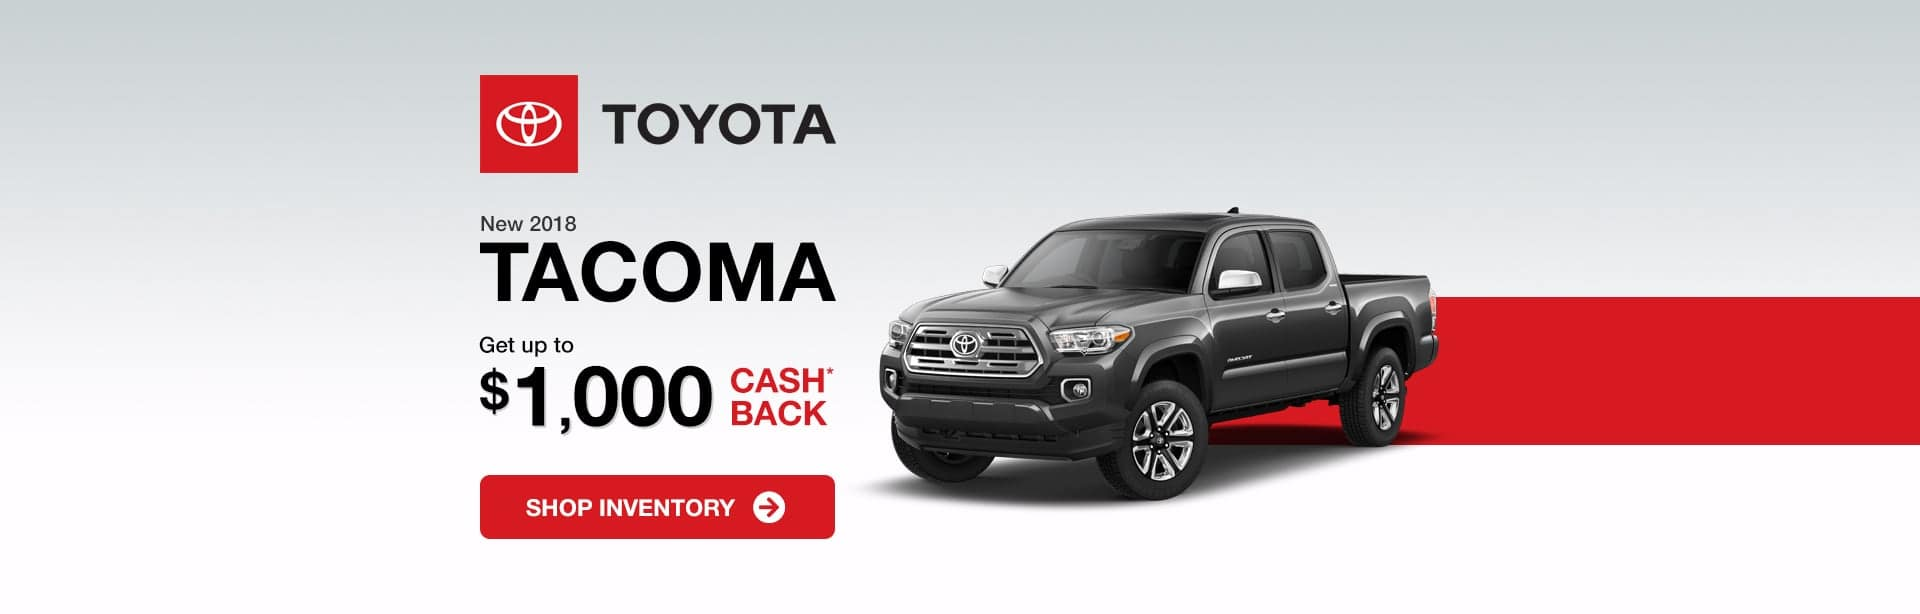 Toyota Tacoma Indianapolis Cash Back Offer